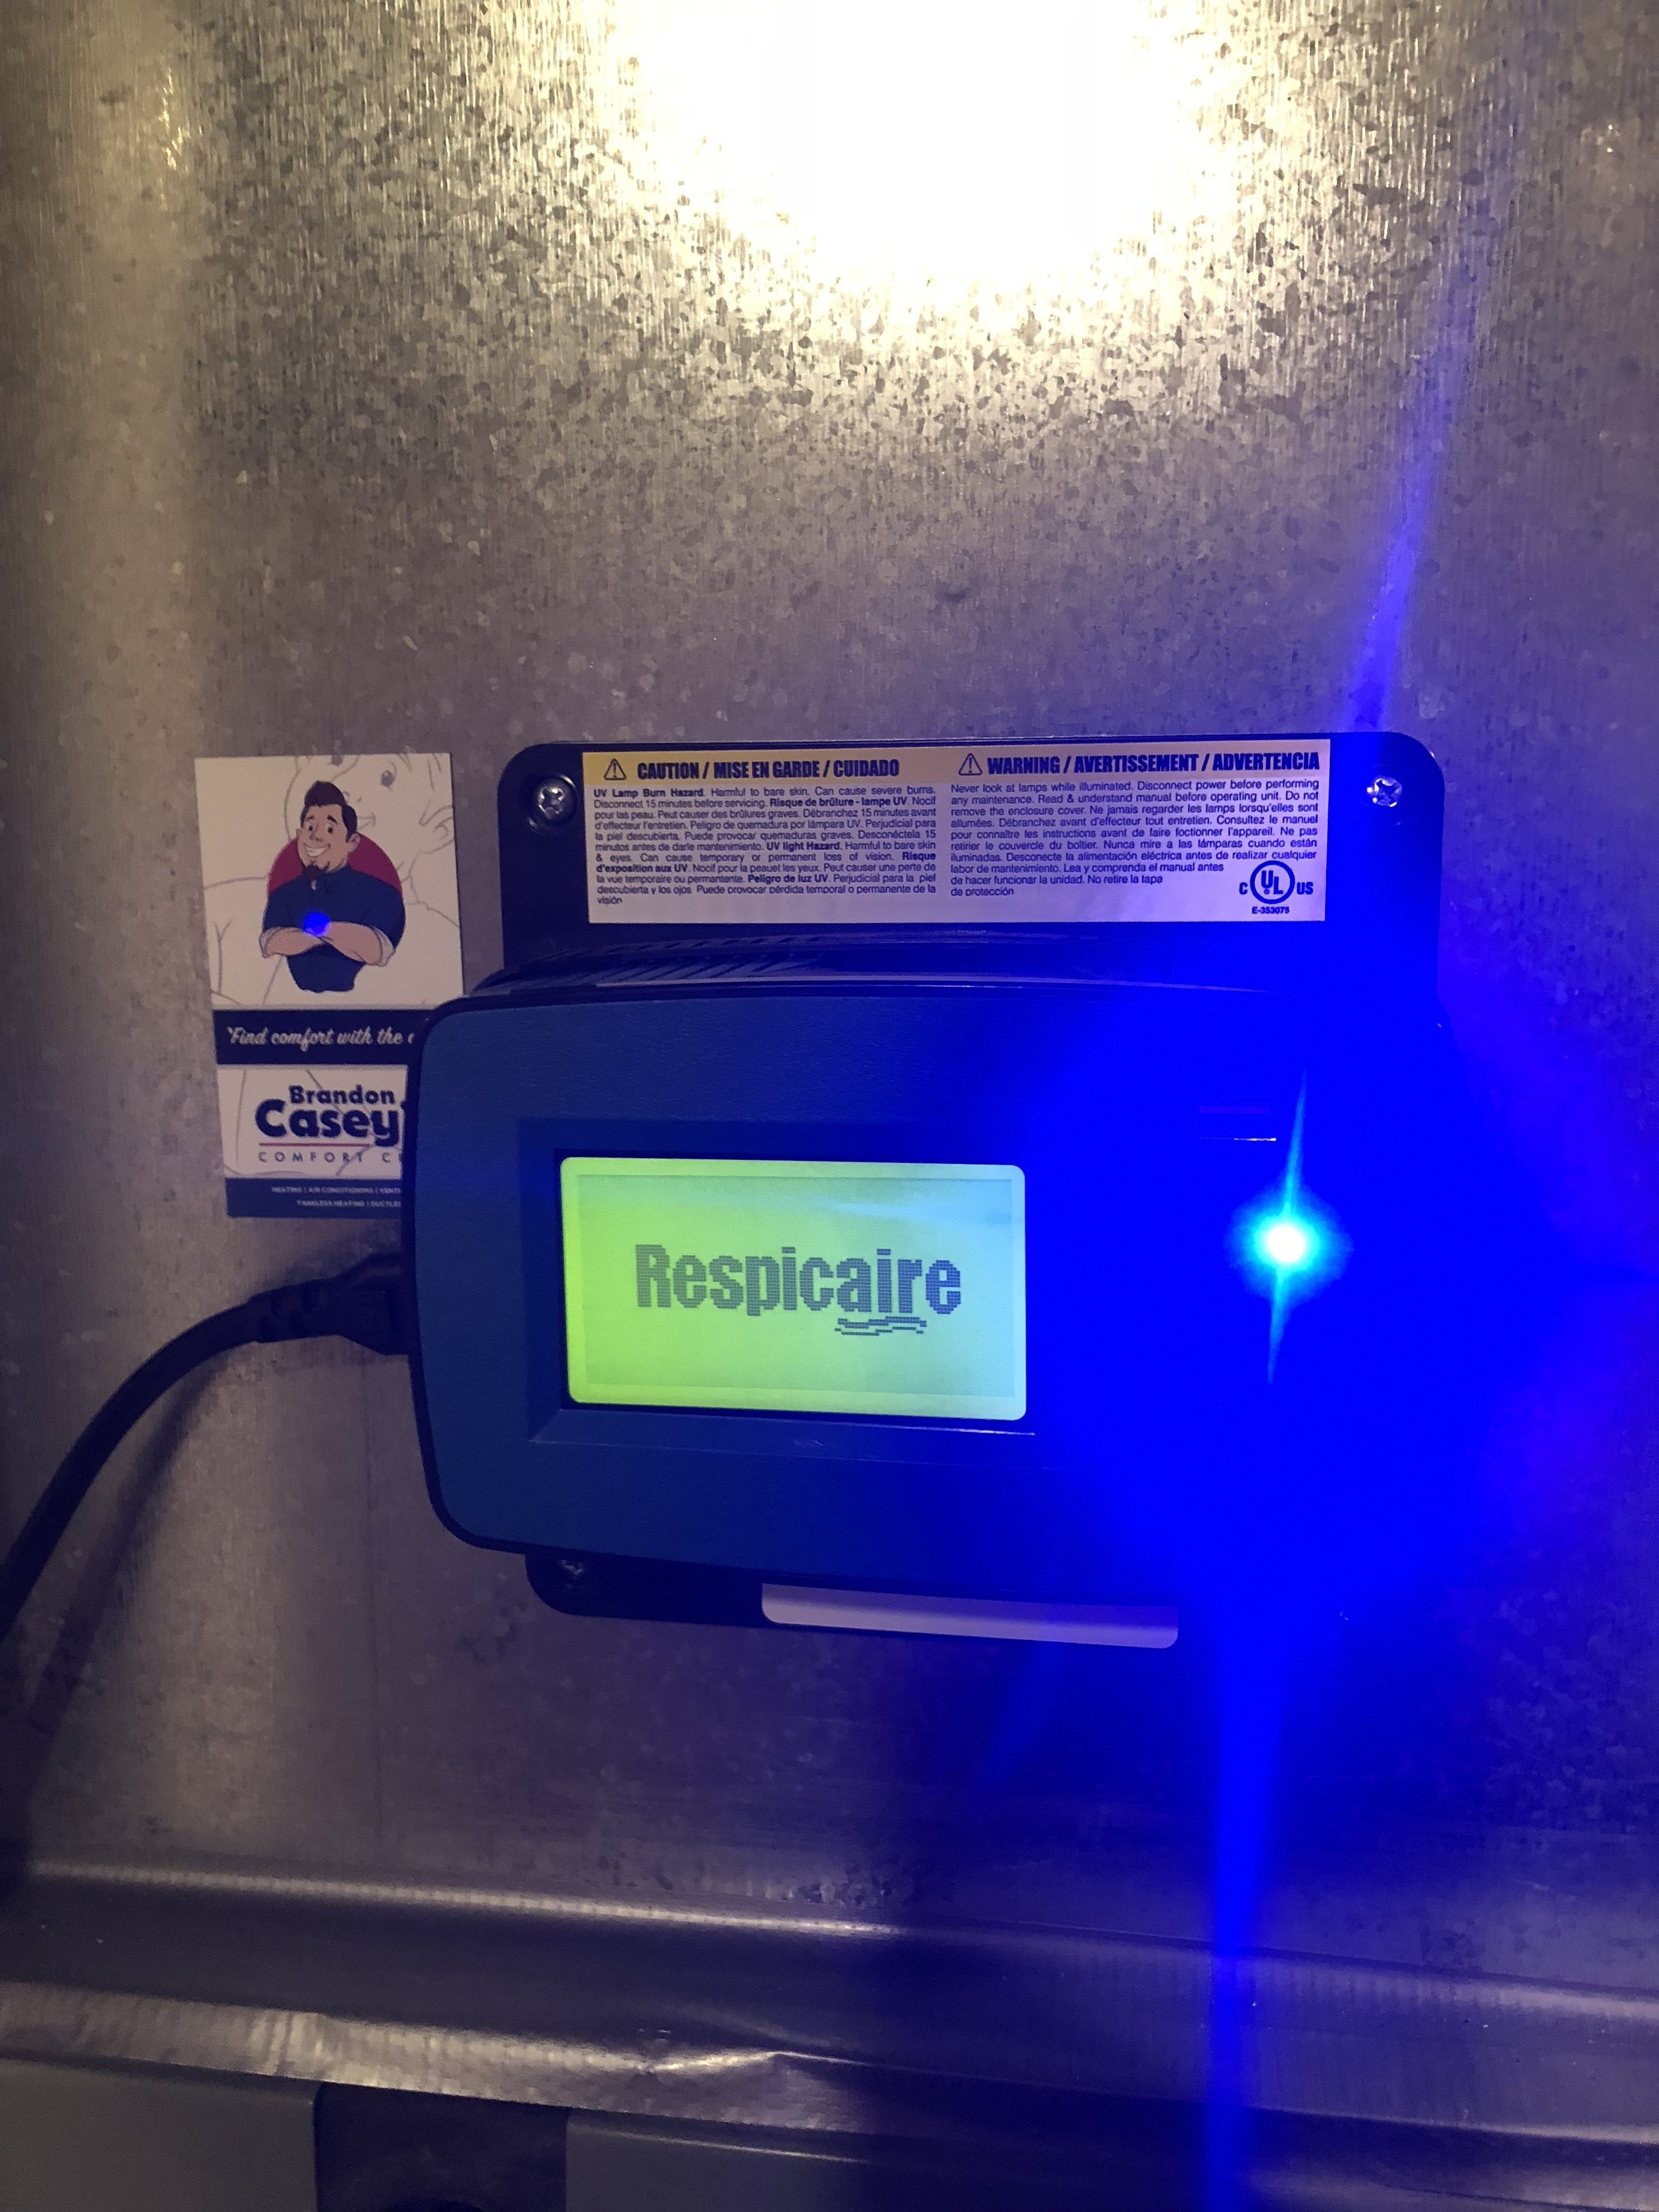 Respicaire Ultraviolet Light System